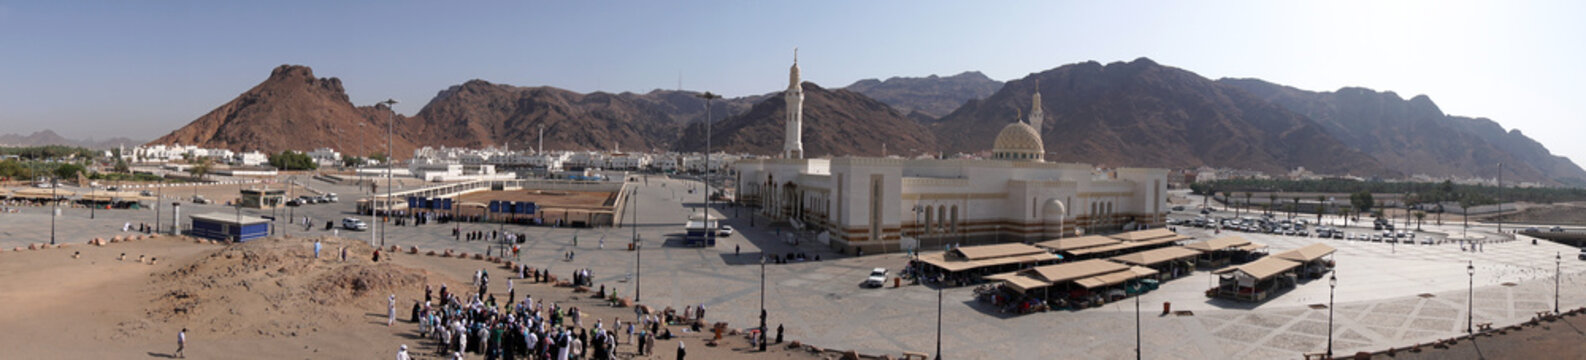 the crowds of pilgrims who come to visit Mount Uhud